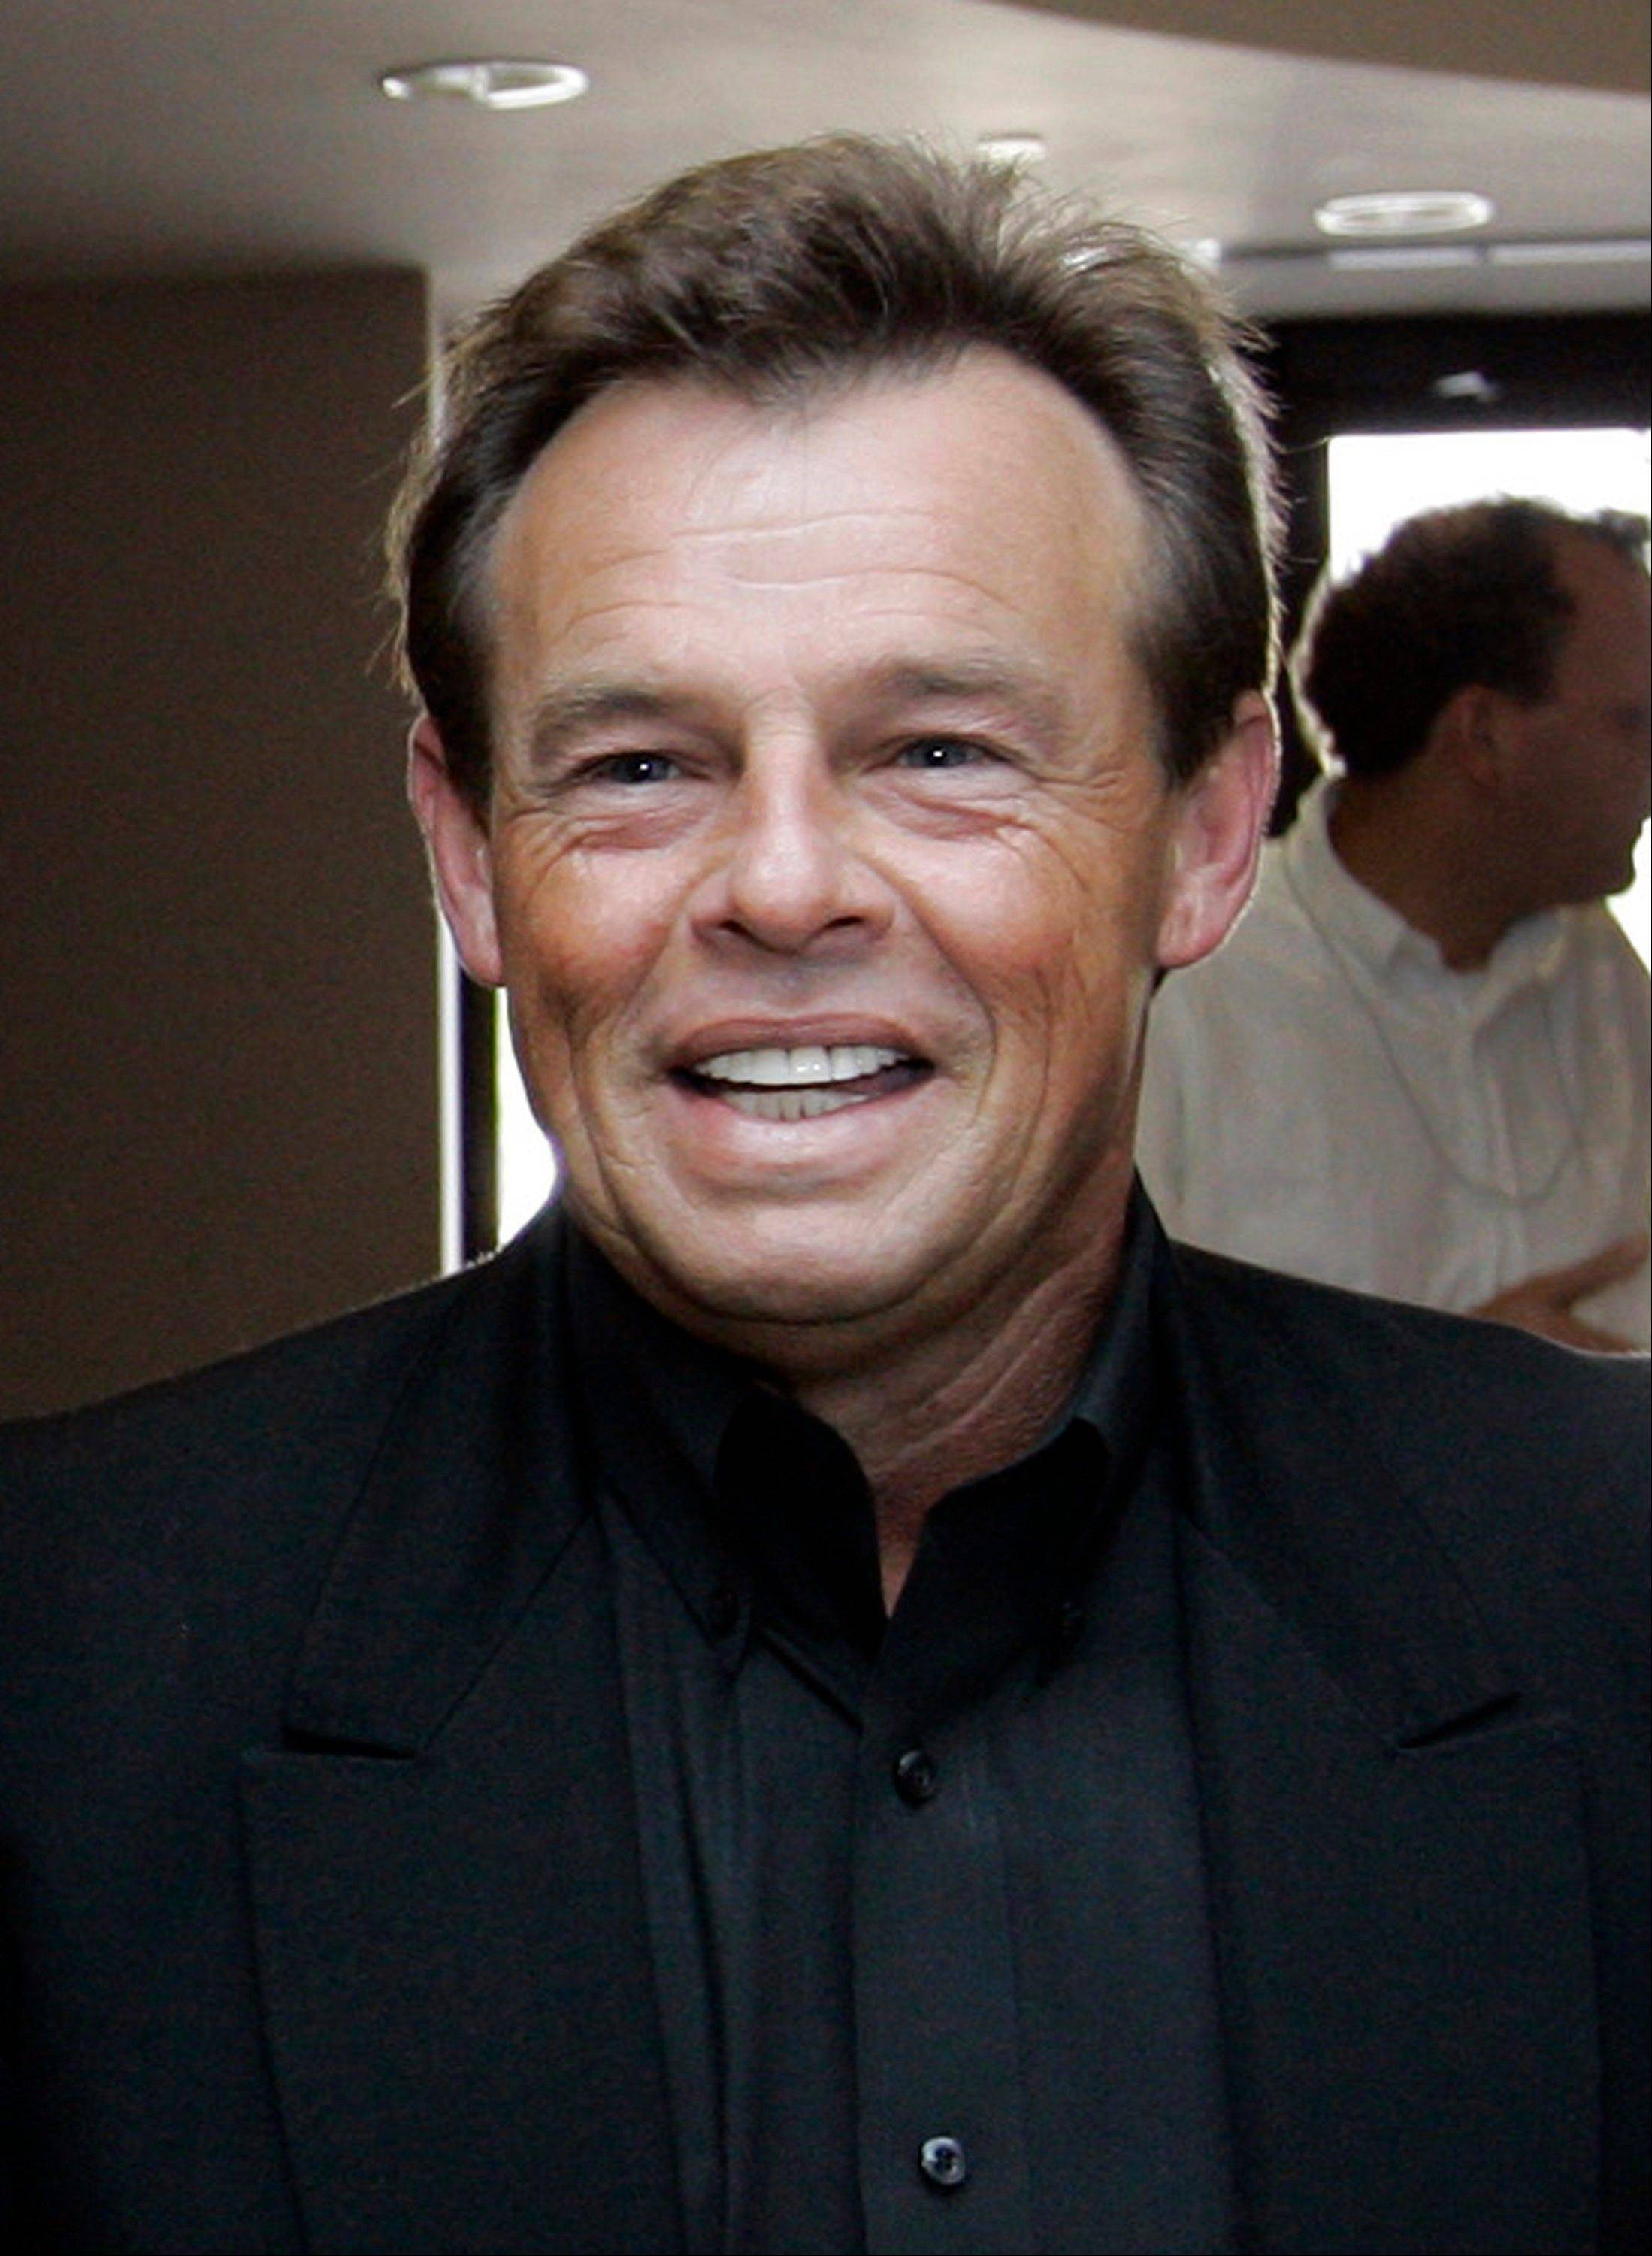 Country singer Sammy Kershaw's tour bus was struck by another vehicle on Friday in Nocona, Texas. The impact caused major damage to the bus, and the car was totaled.